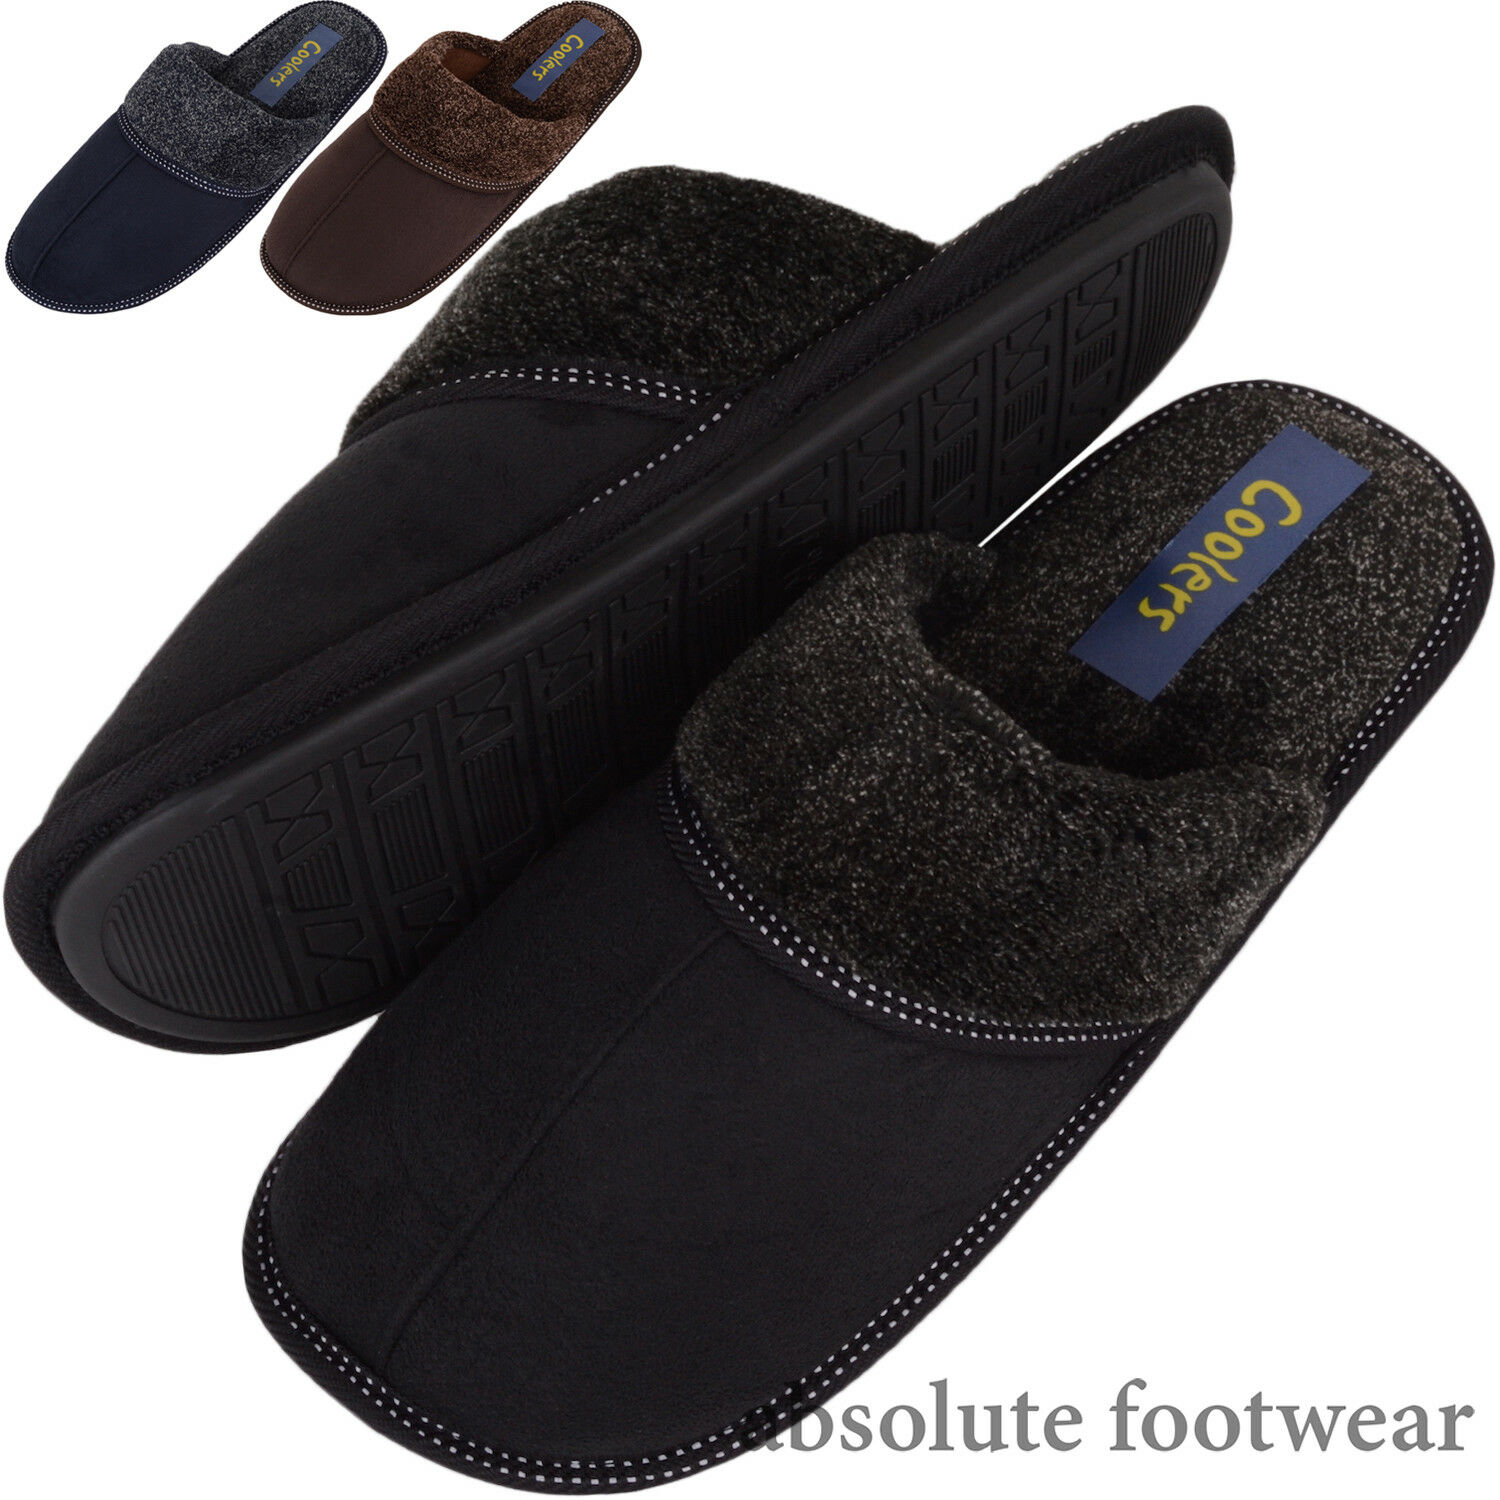 Hombre / Gents Slip / On Slippers / Mules / Slip Indoor Zapatos with Stitch Detail 9384c3